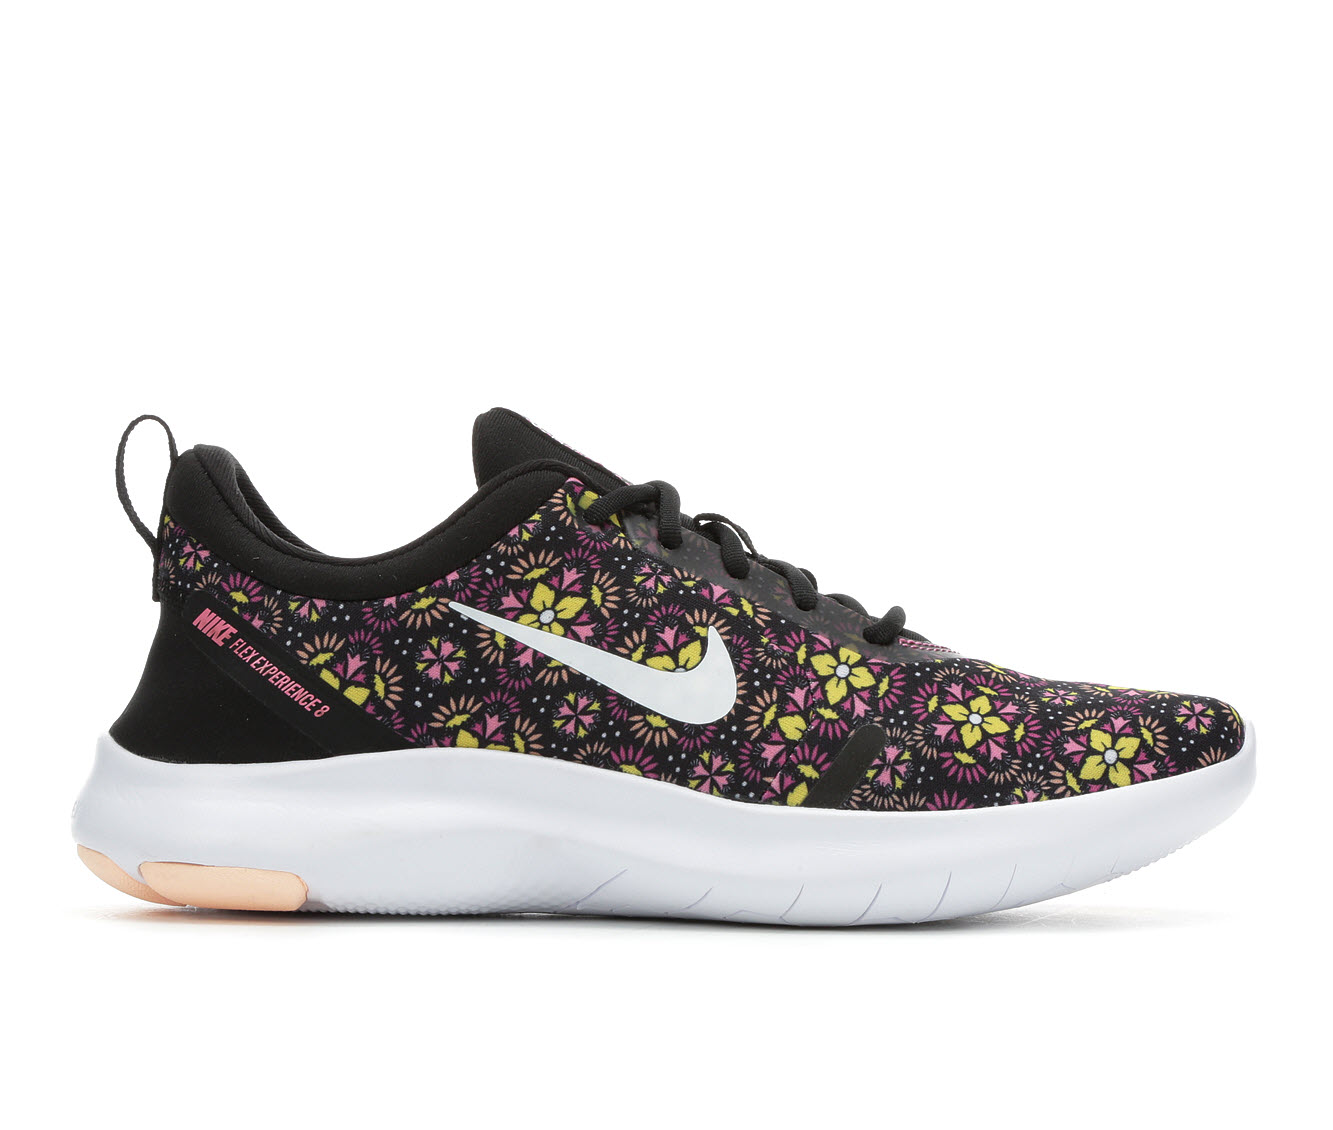 Nike Flex Experience Run 8 SE Women's Athletic Shoe (Black)